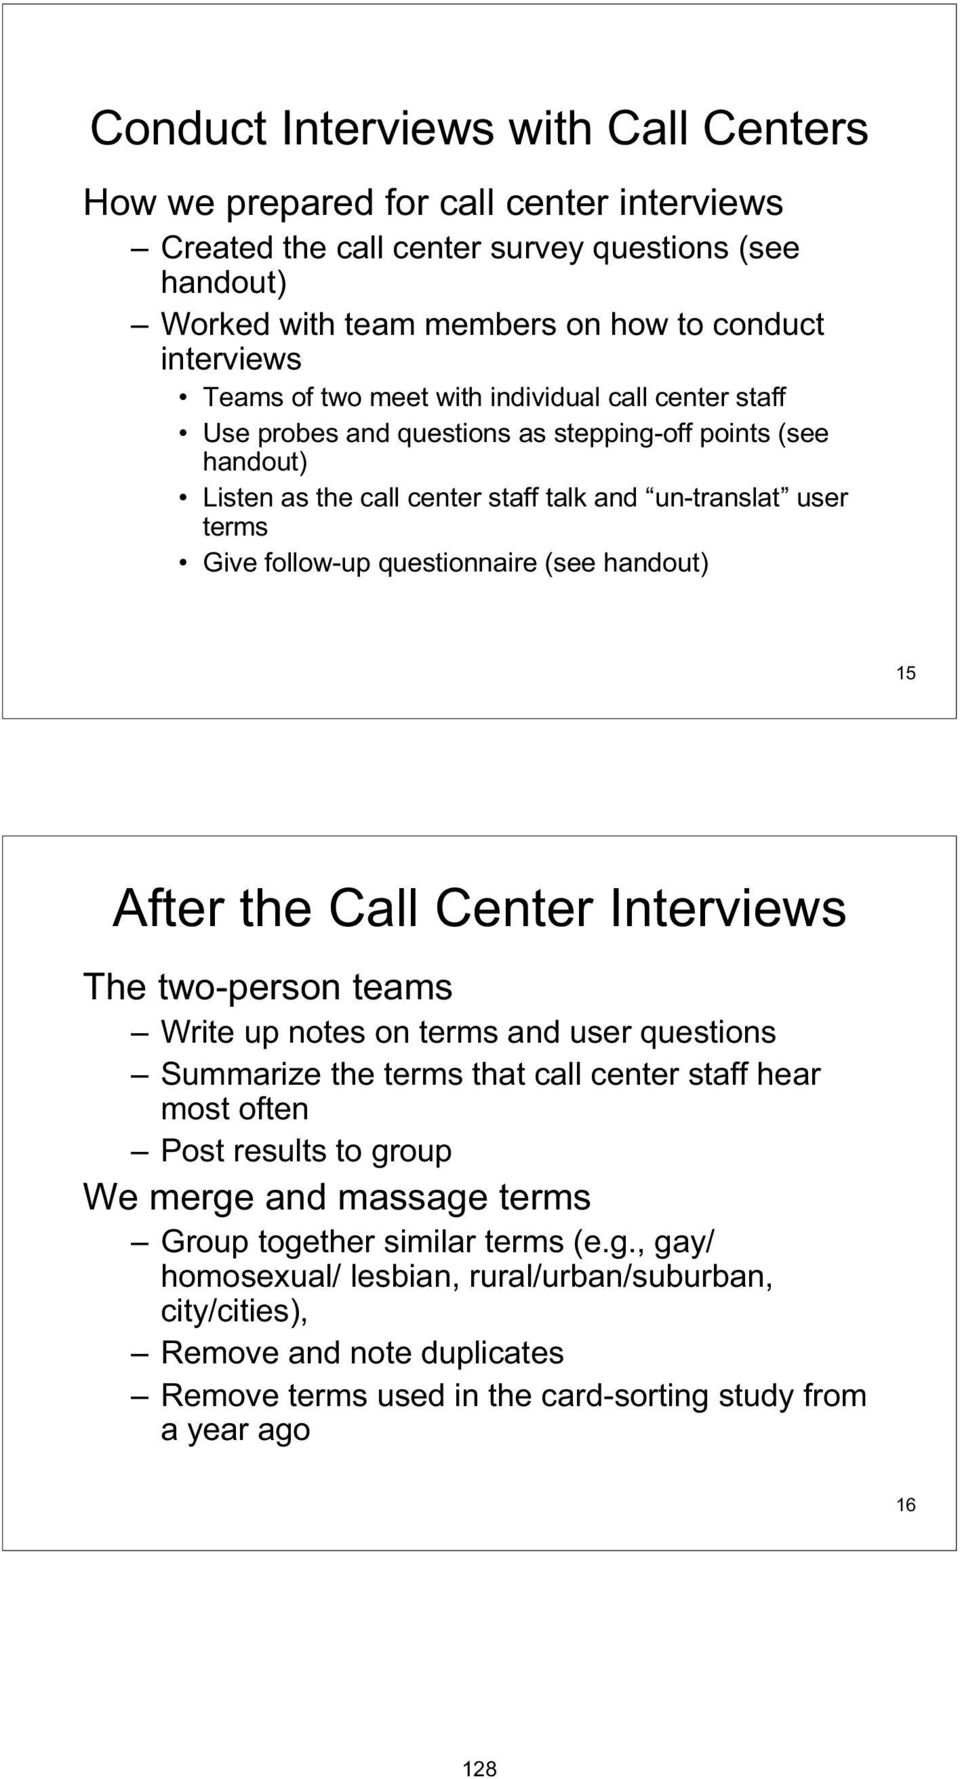 (see handout) 15 After the Call Center Interviews The two-person teams Write up notes on terms and user questions Summarize the terms that call center staff hear most often Post results to group We